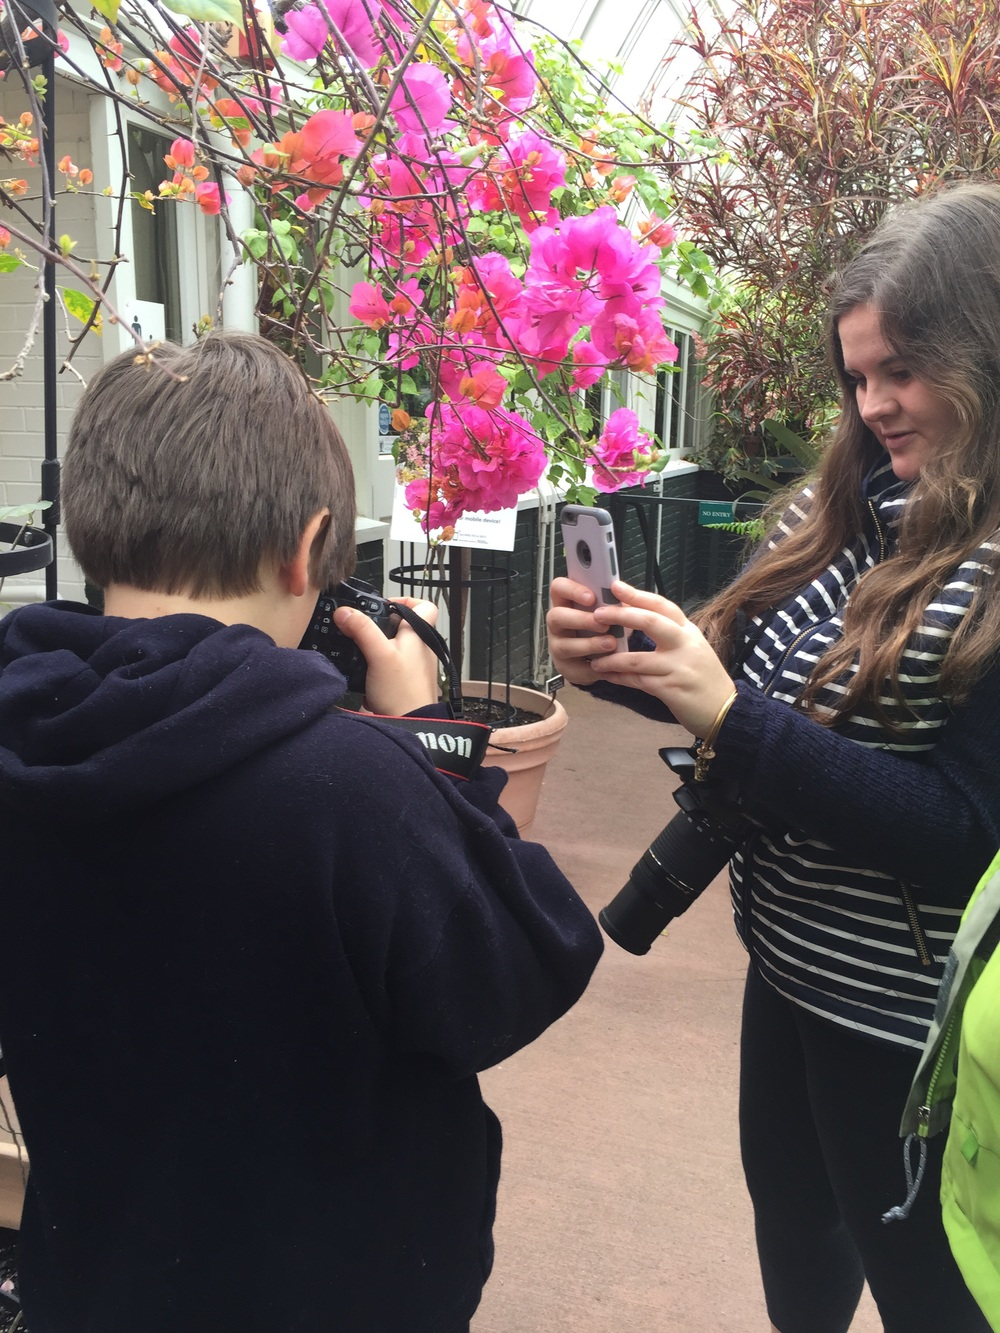 Kids and flowers and social media do mix!